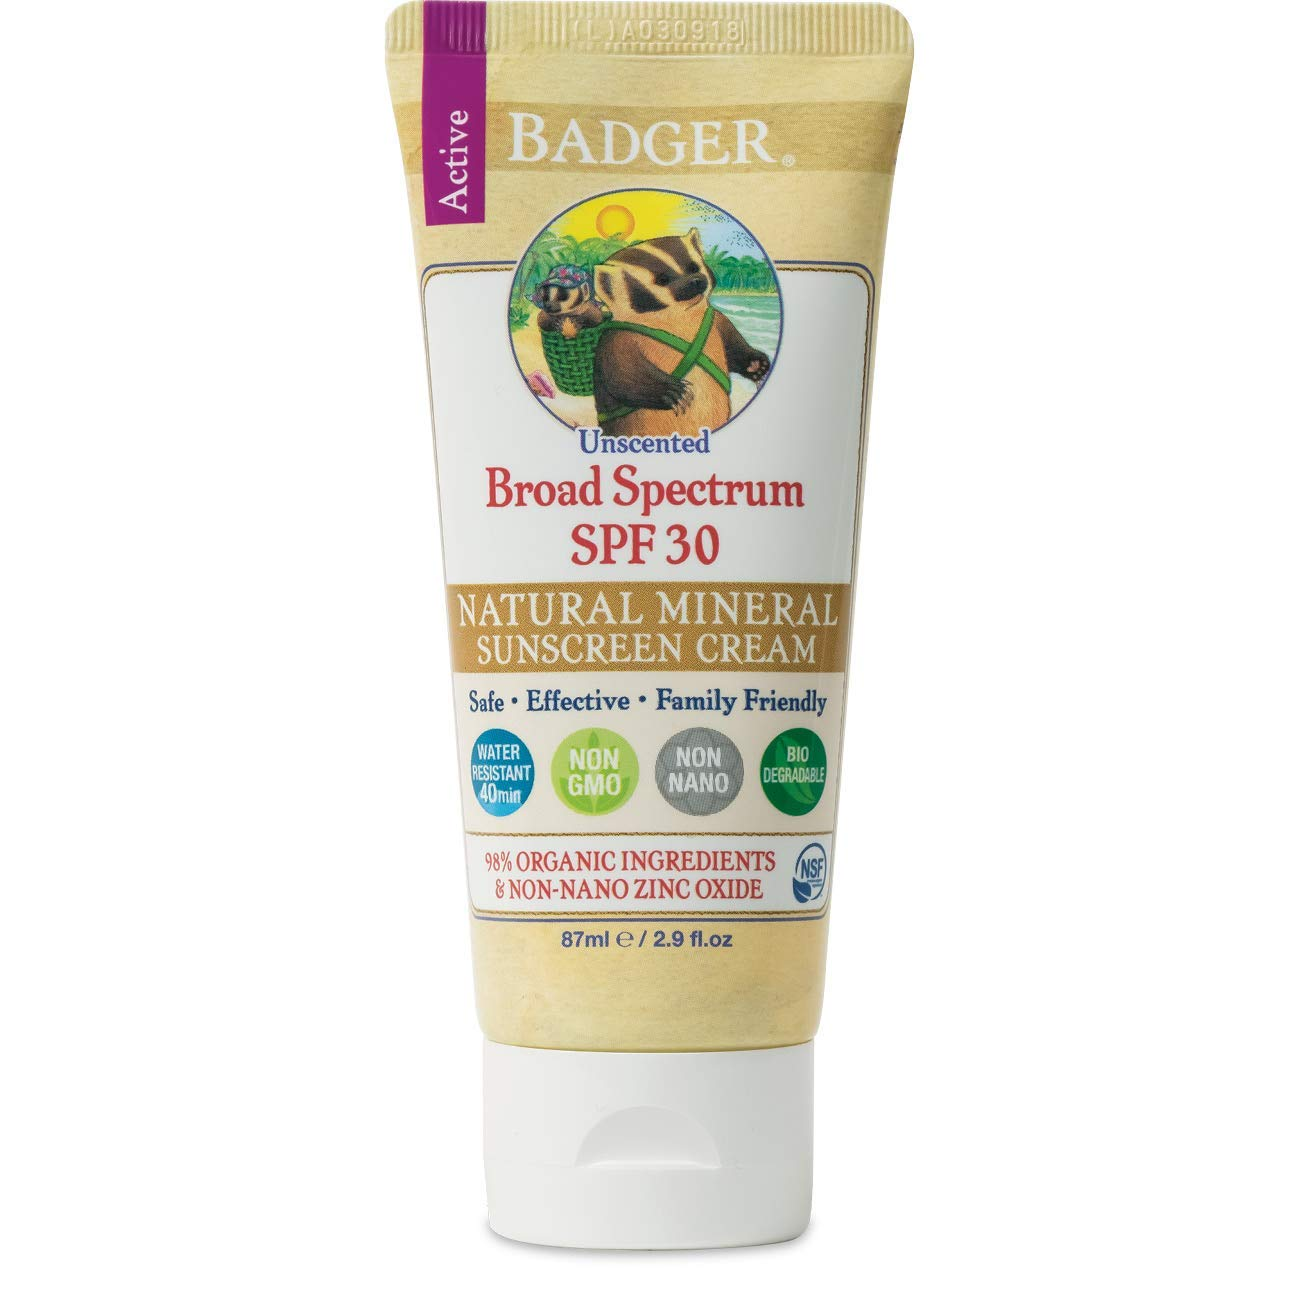 Badger - SPF 30 Zinc Oxide Sunscreen Cream - Unscented - Broad Spectrum Water Resistant Reef Safe Sunscreen, Natural Mineral Sunscreen with Organic Ingredients 2.9 fl oz